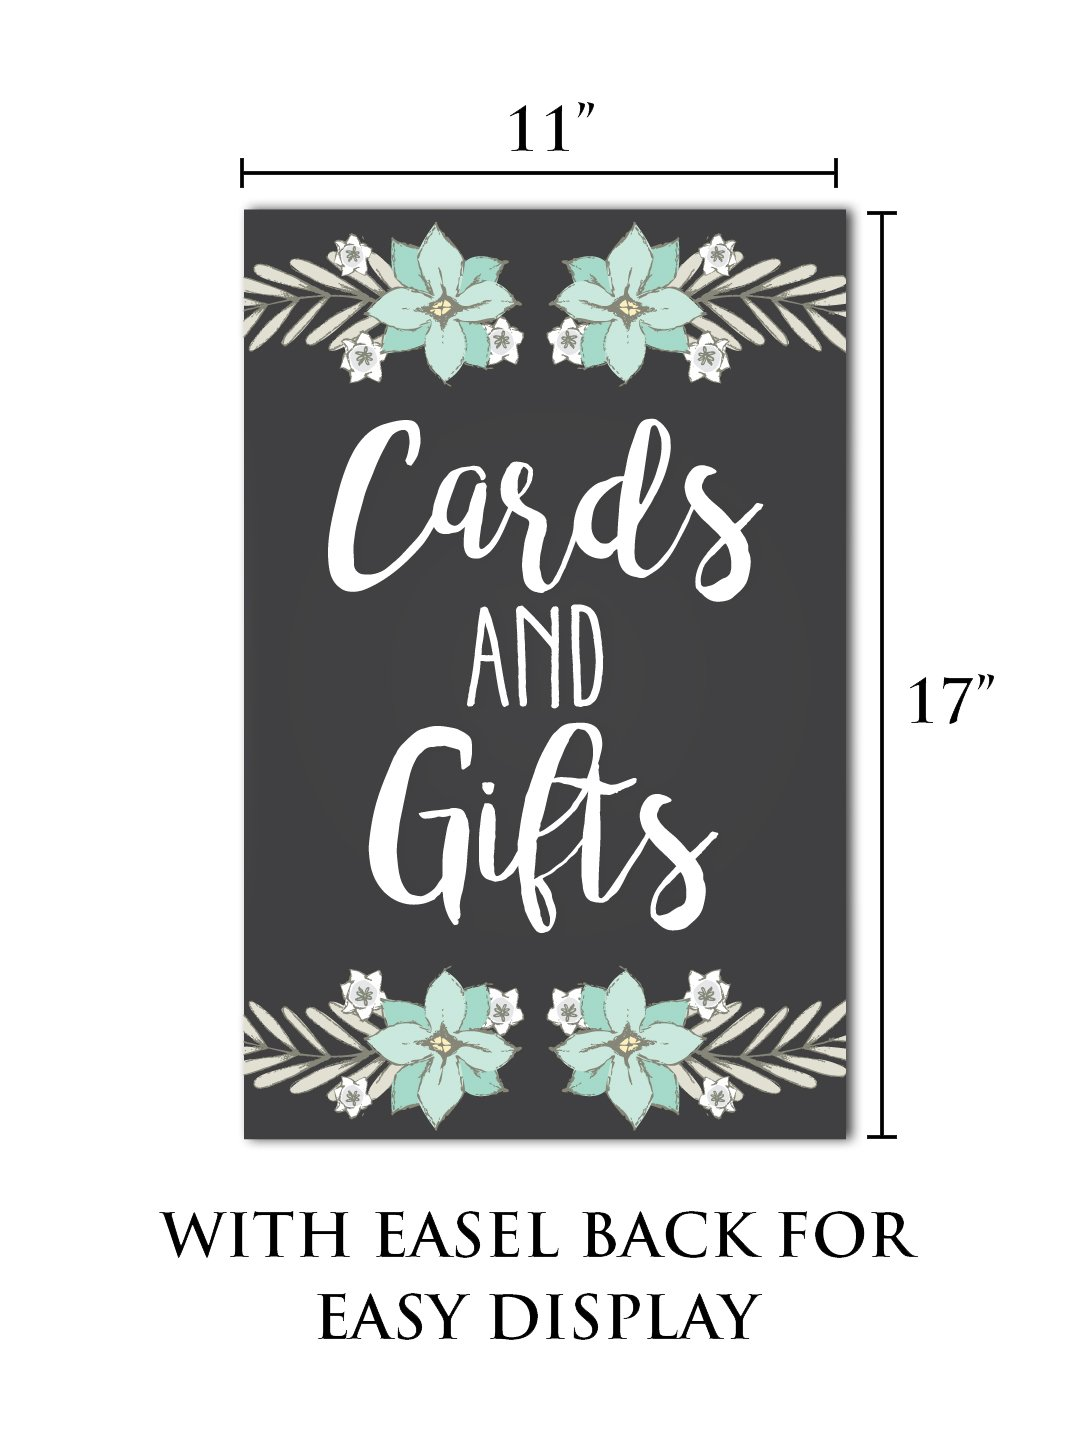 WEDDING CARDS AND GIFTS SIGN Thank You Sign for Wedding Reception Premium Wedding Sign With Easel Back